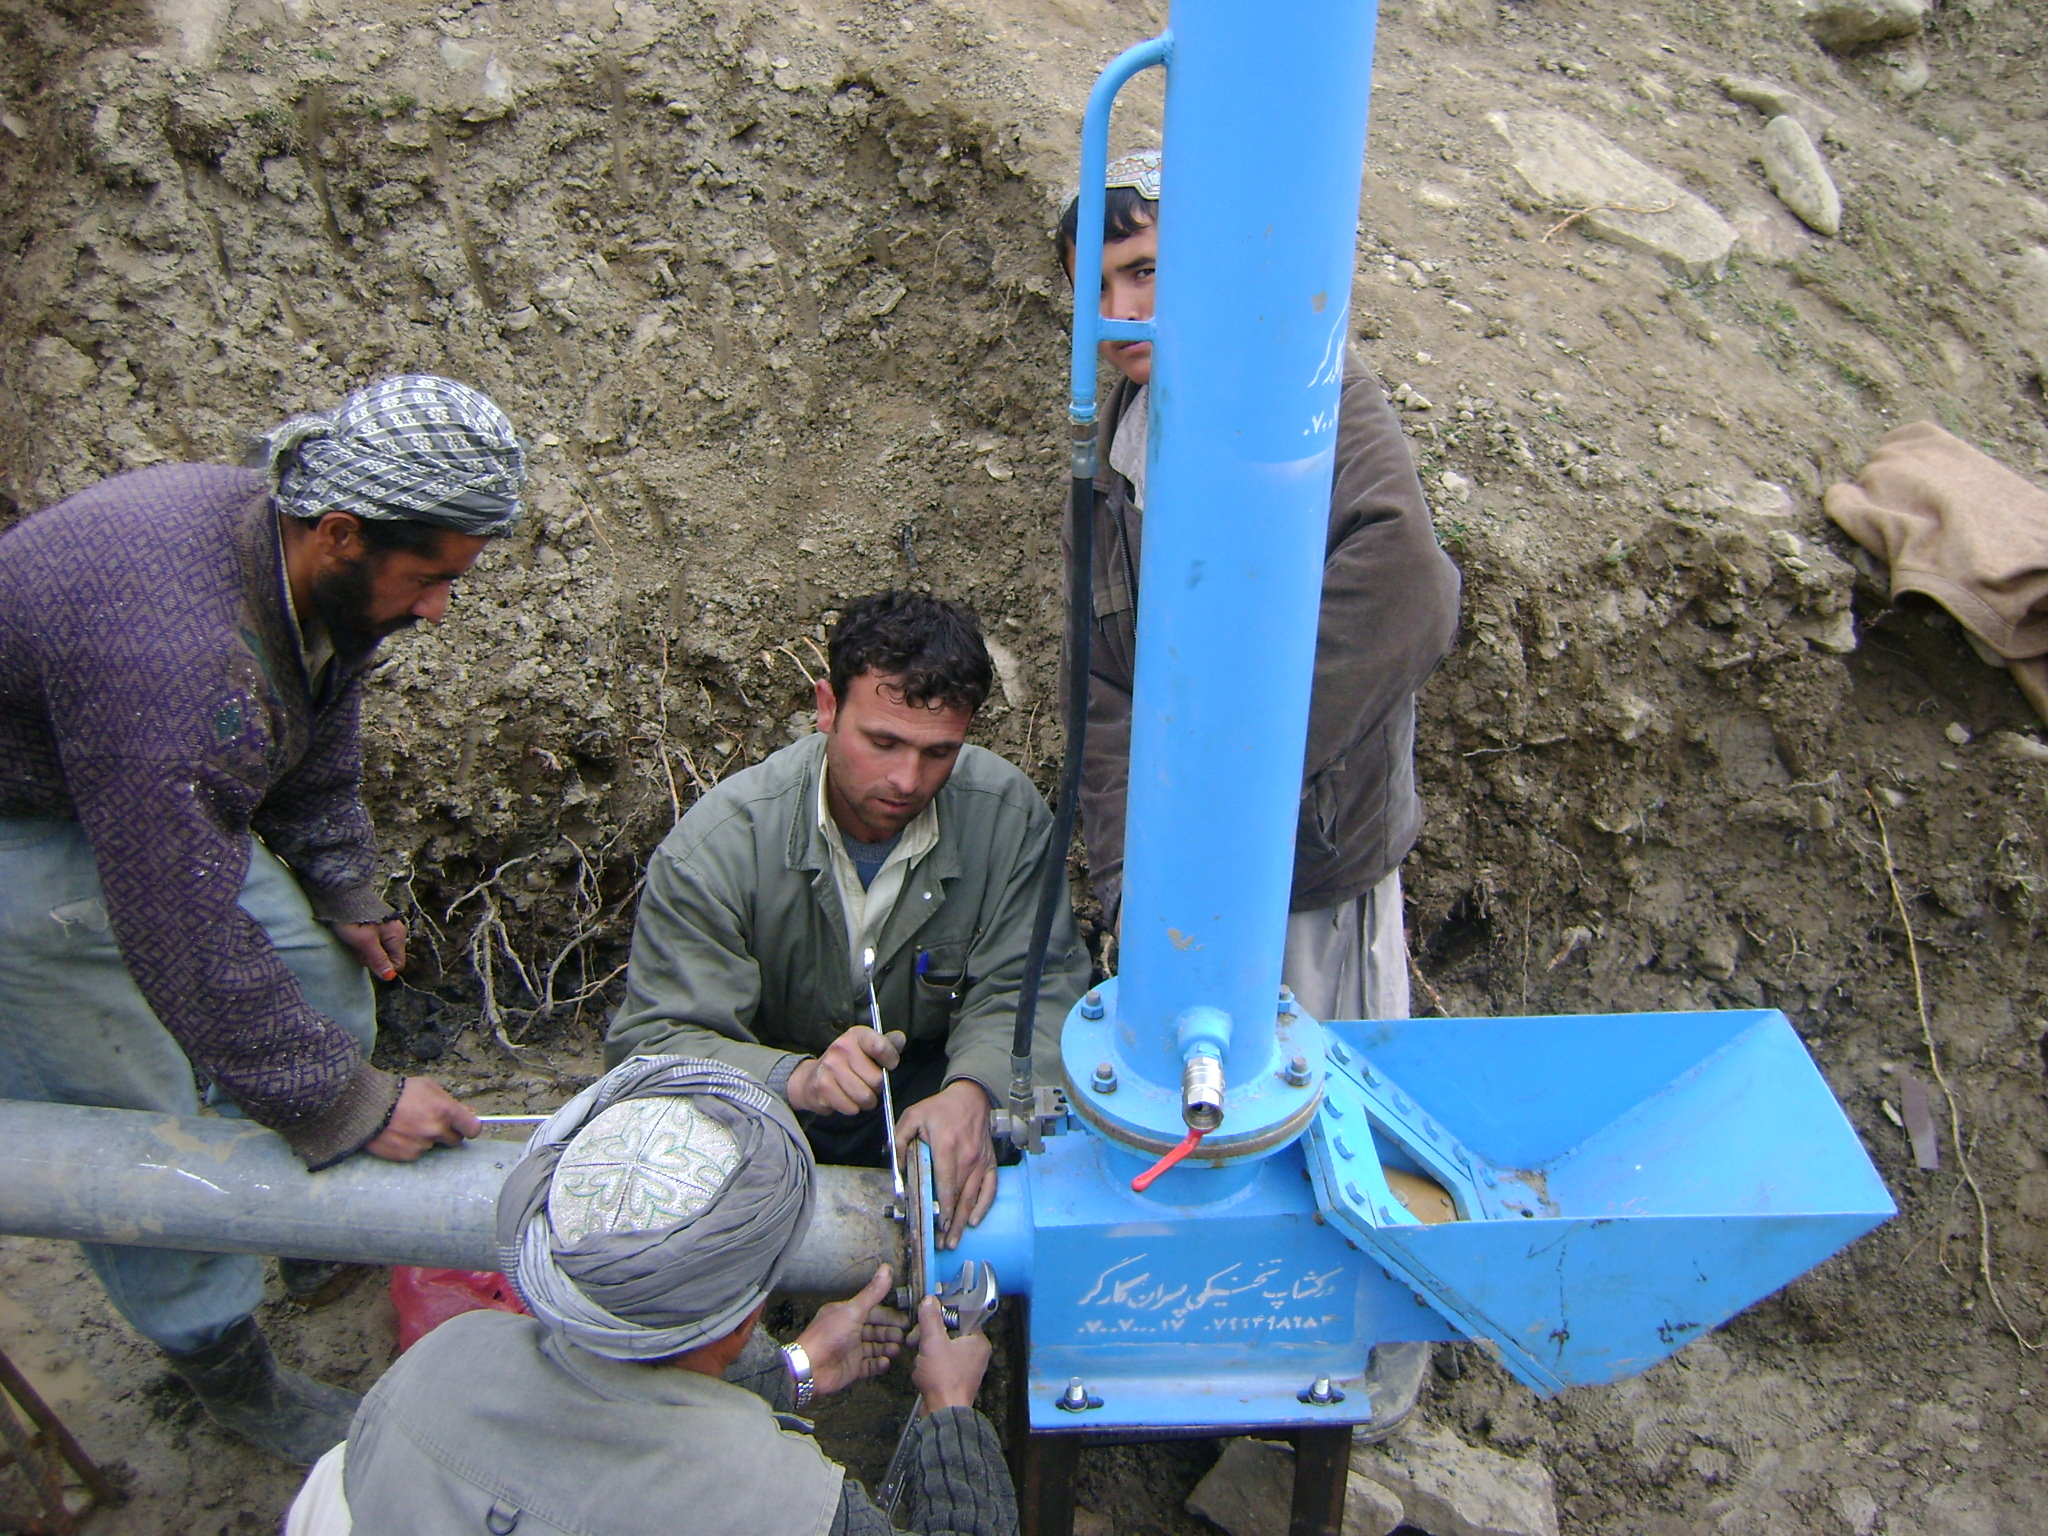 Aidfi ram pump for irrigation manufactured and installed in afghanistan